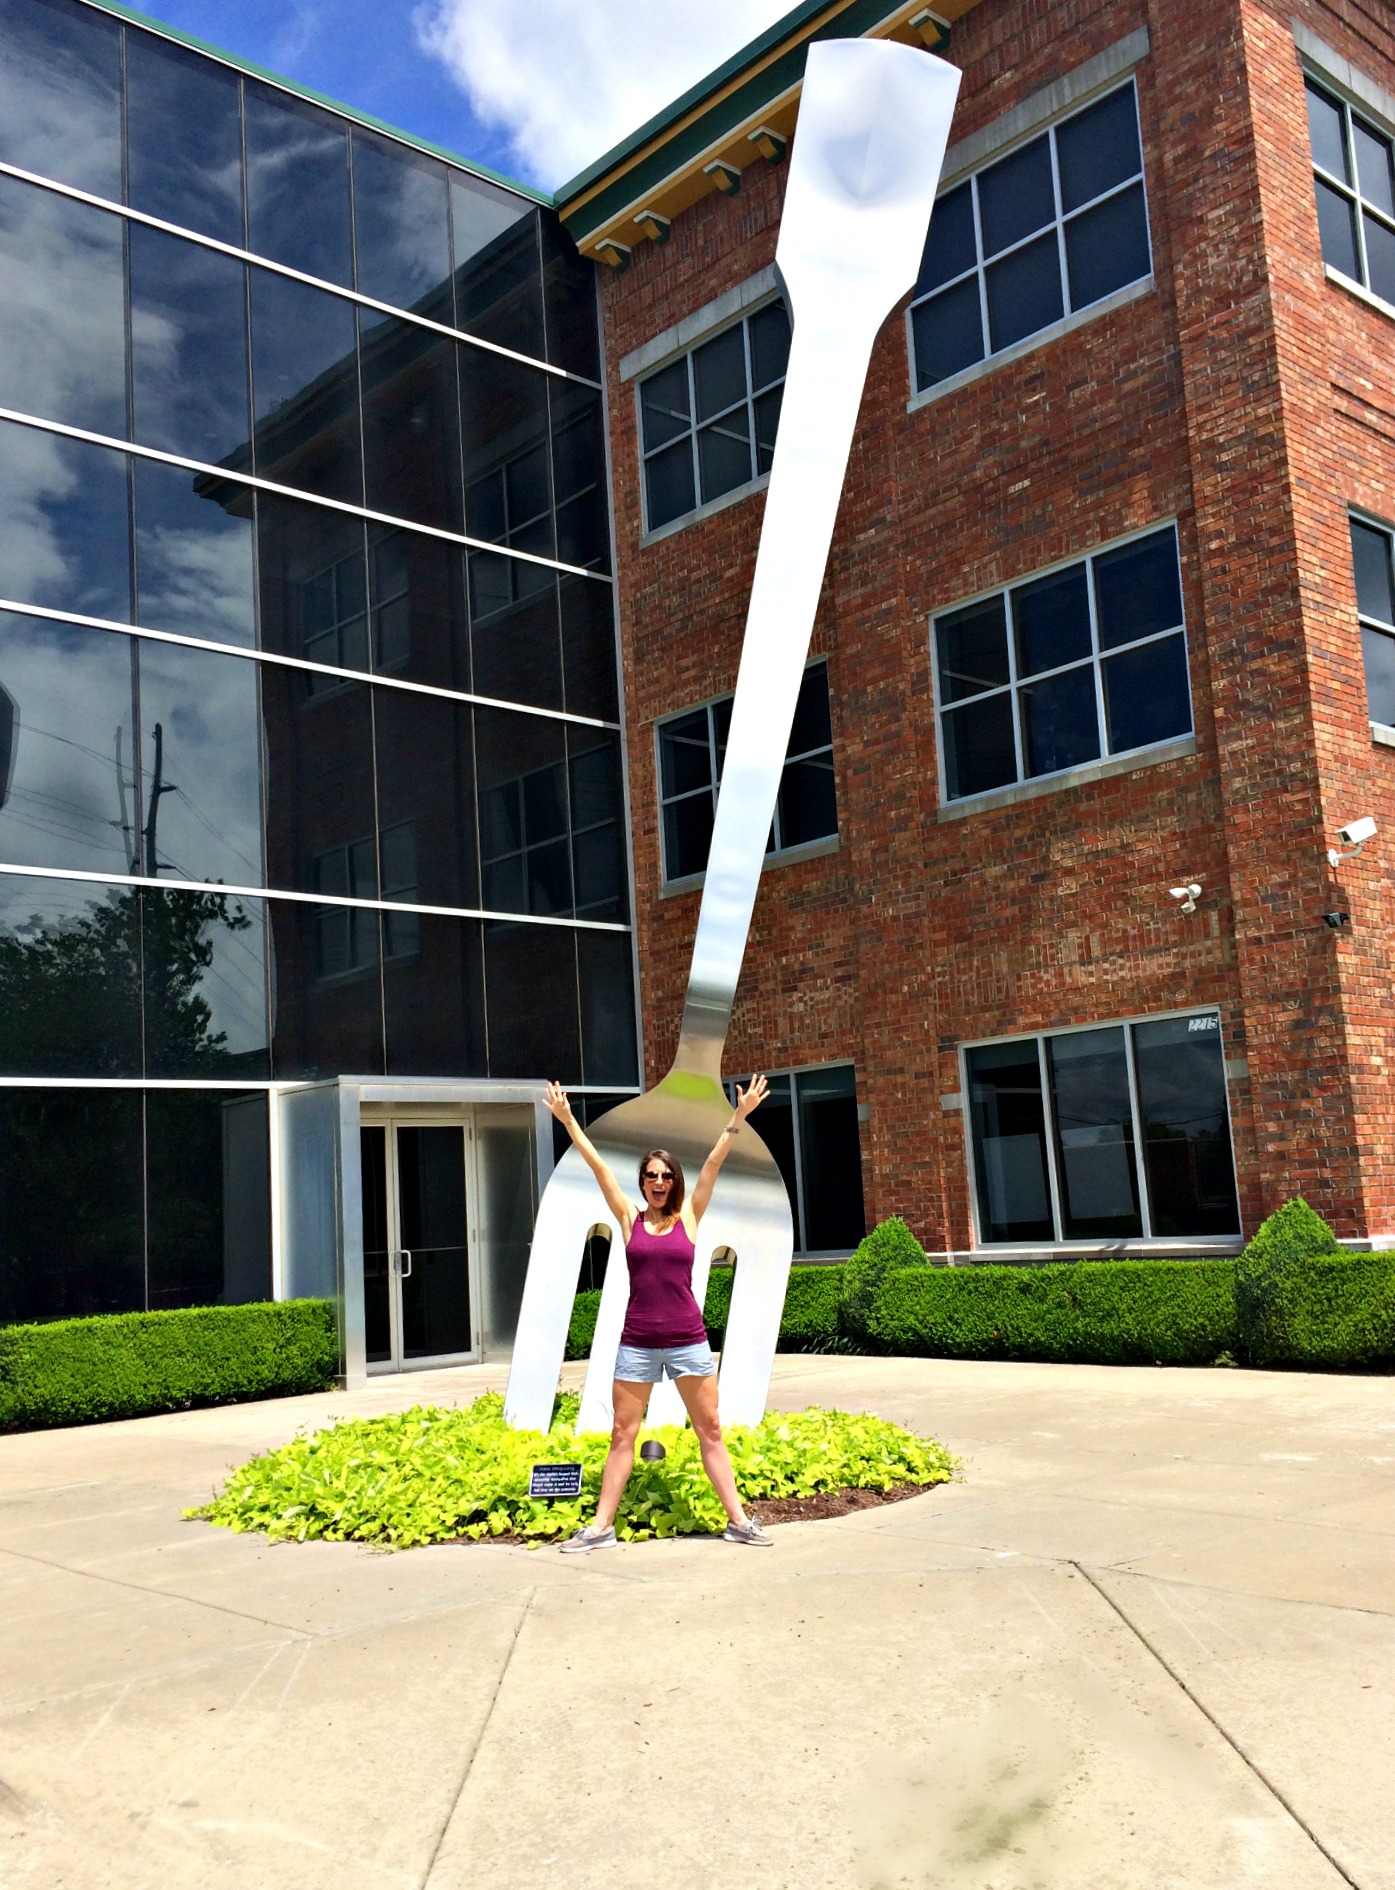 the world's largest fork in springfield, mo